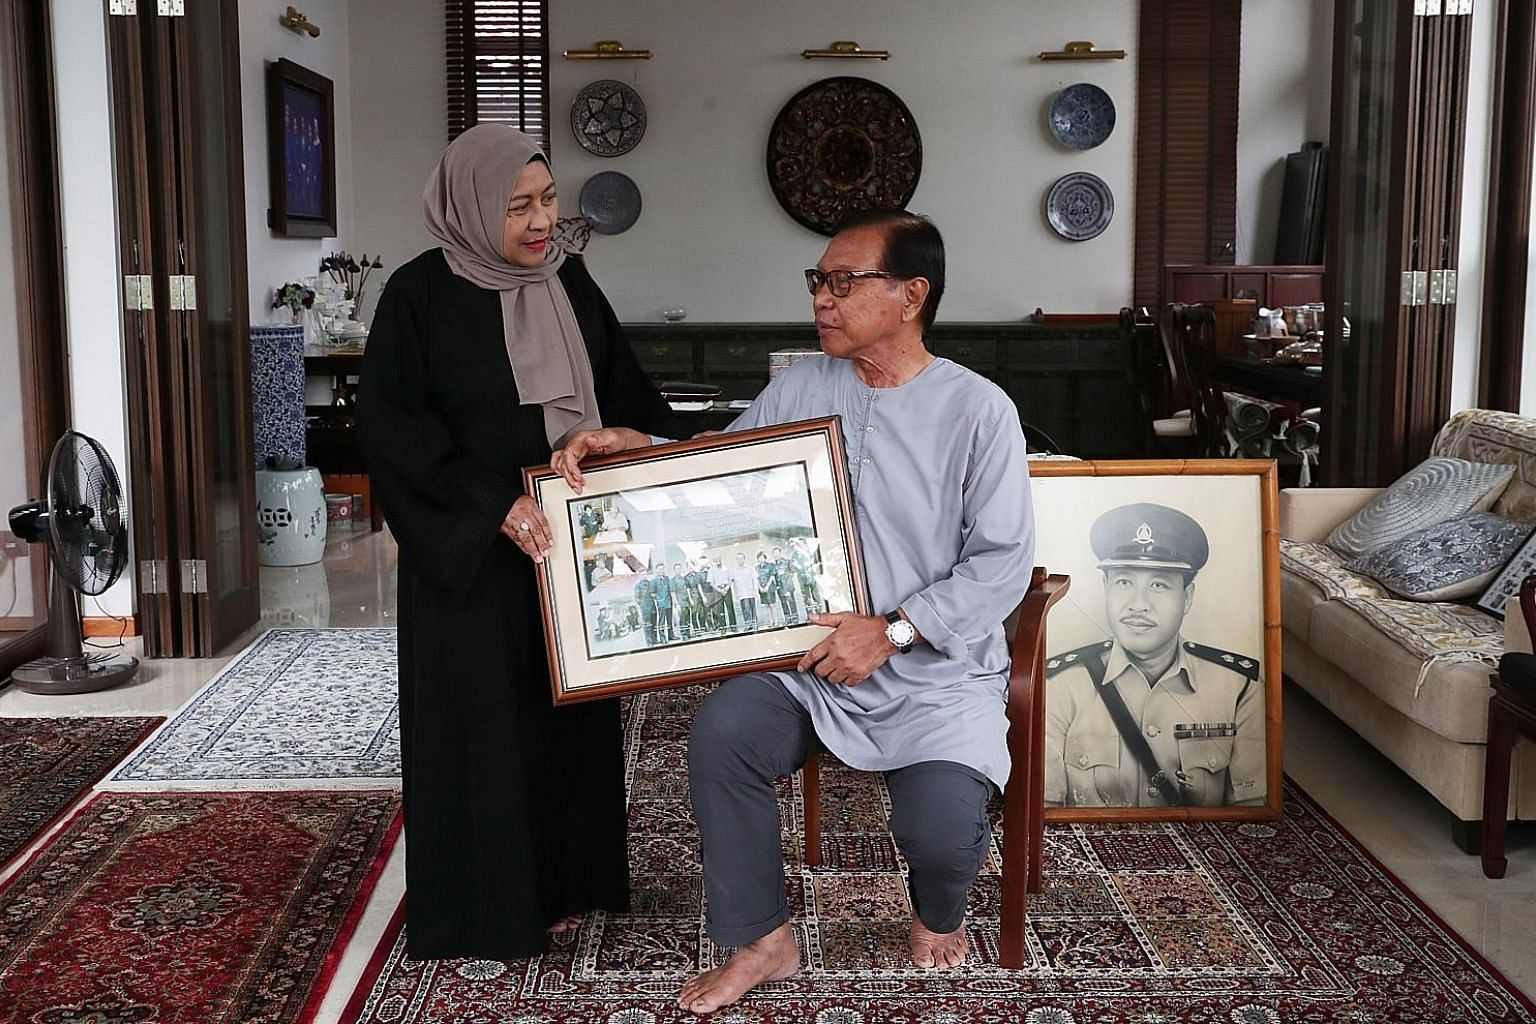 Acting Superintendent Sarpon wore sunglasses on his retirement day at Changi Prison in 1970 so no one could see his tears. Madam Norhaya Sarpon, 62, and Mr Sobahri Sarpon, 73, reminiscing with photos and stories of their late father, Mr Sarpon Muradi